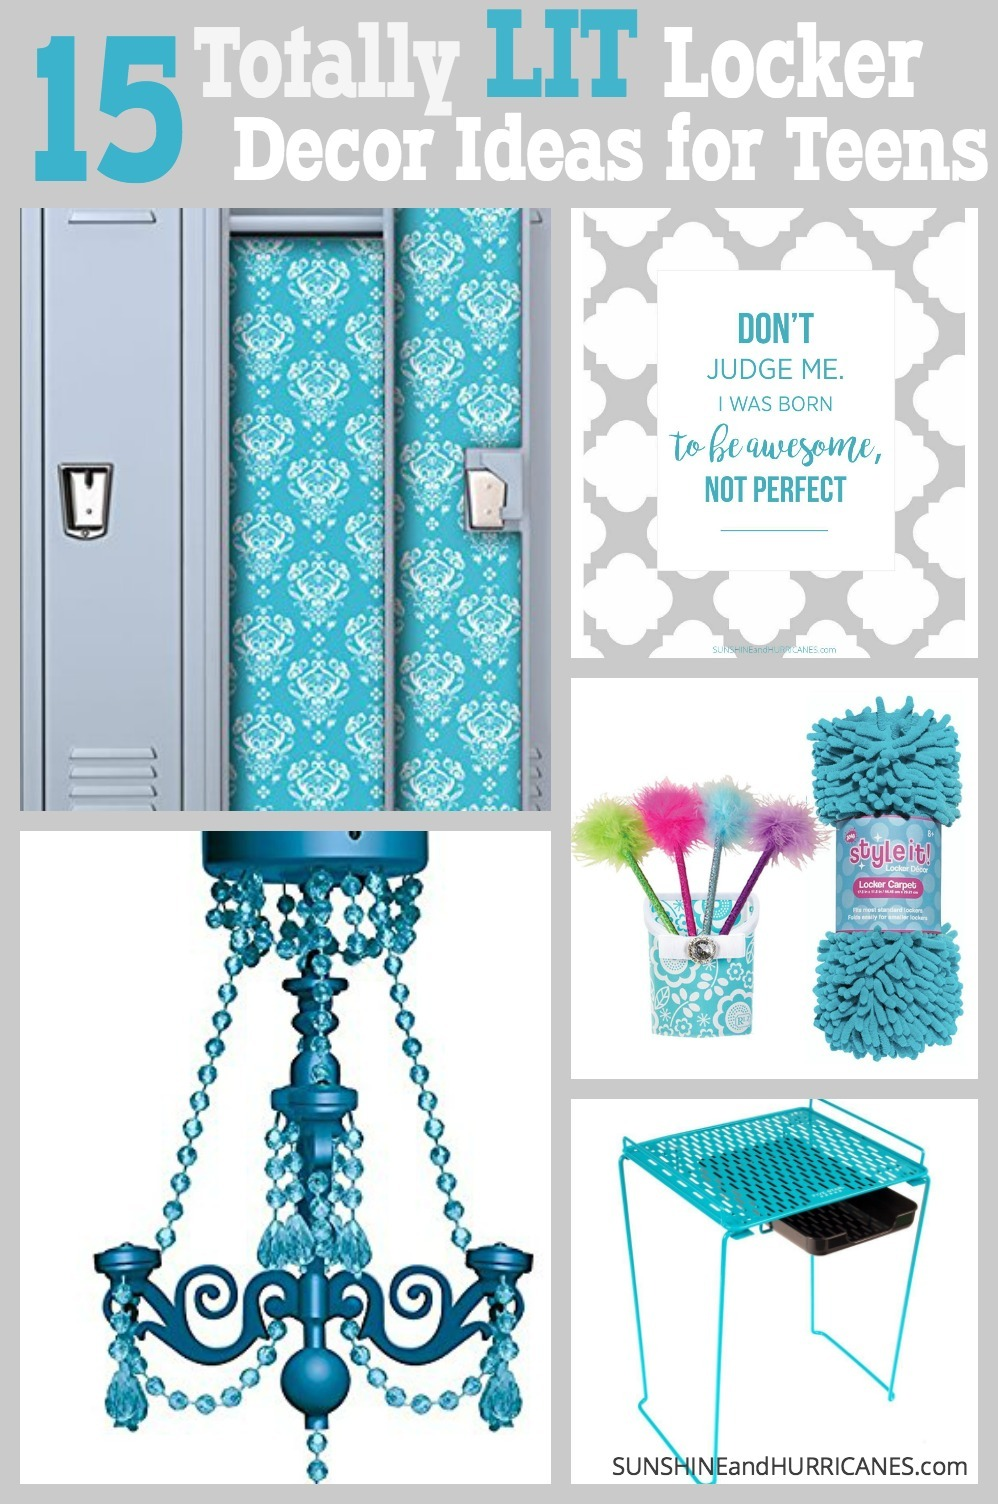 Express your personal style and tastes in your school space with these 15 LIT Locker Decor Ideas. SunshineandHurricanes.com